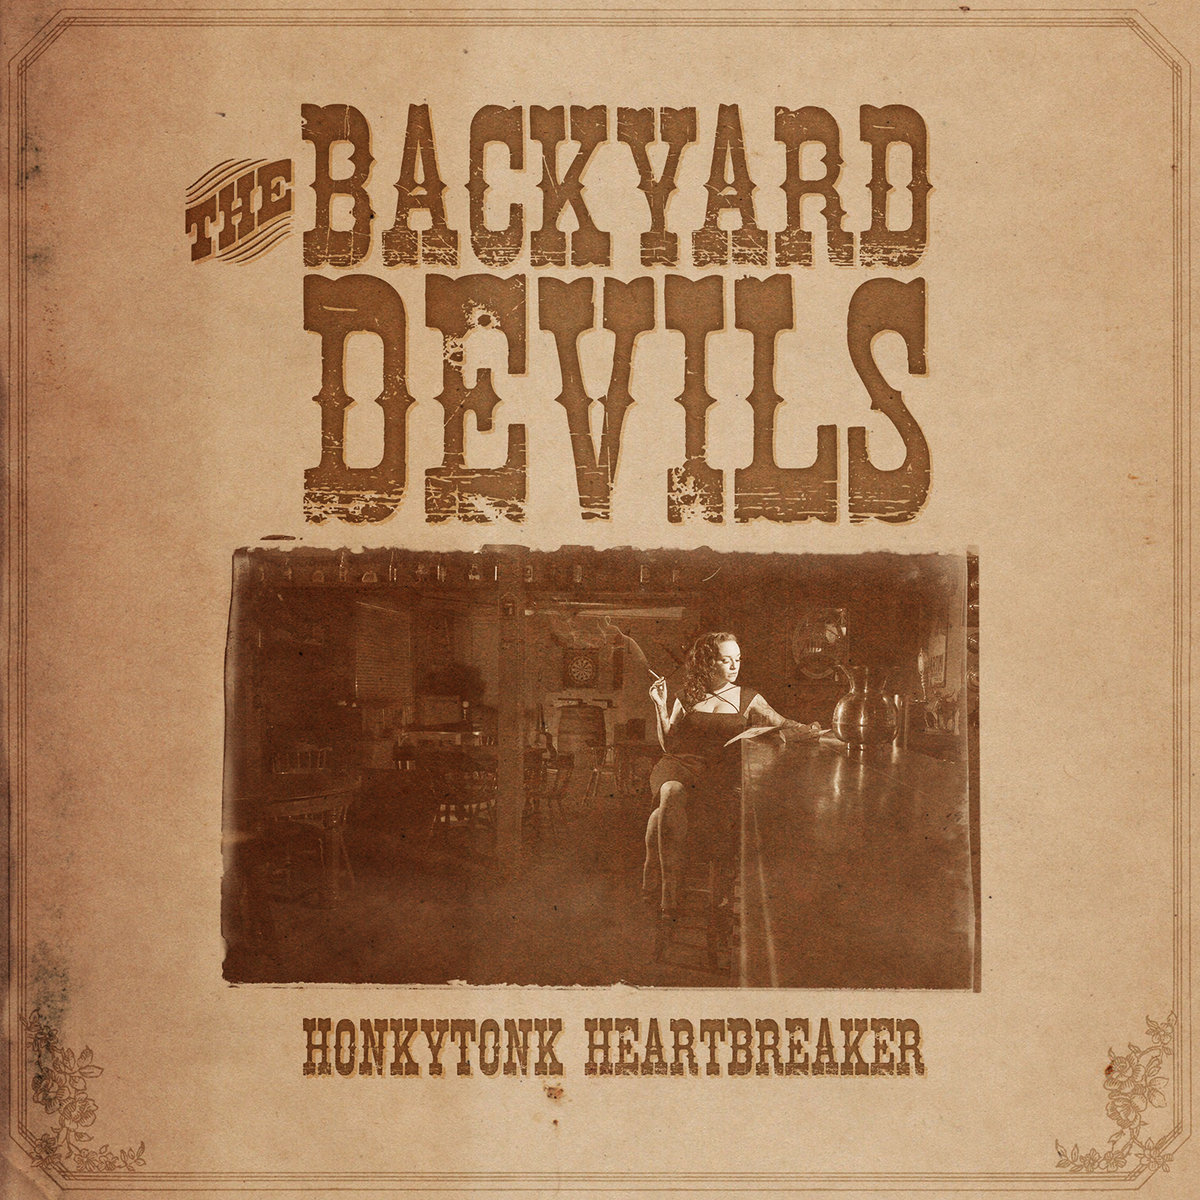 the backyard devils